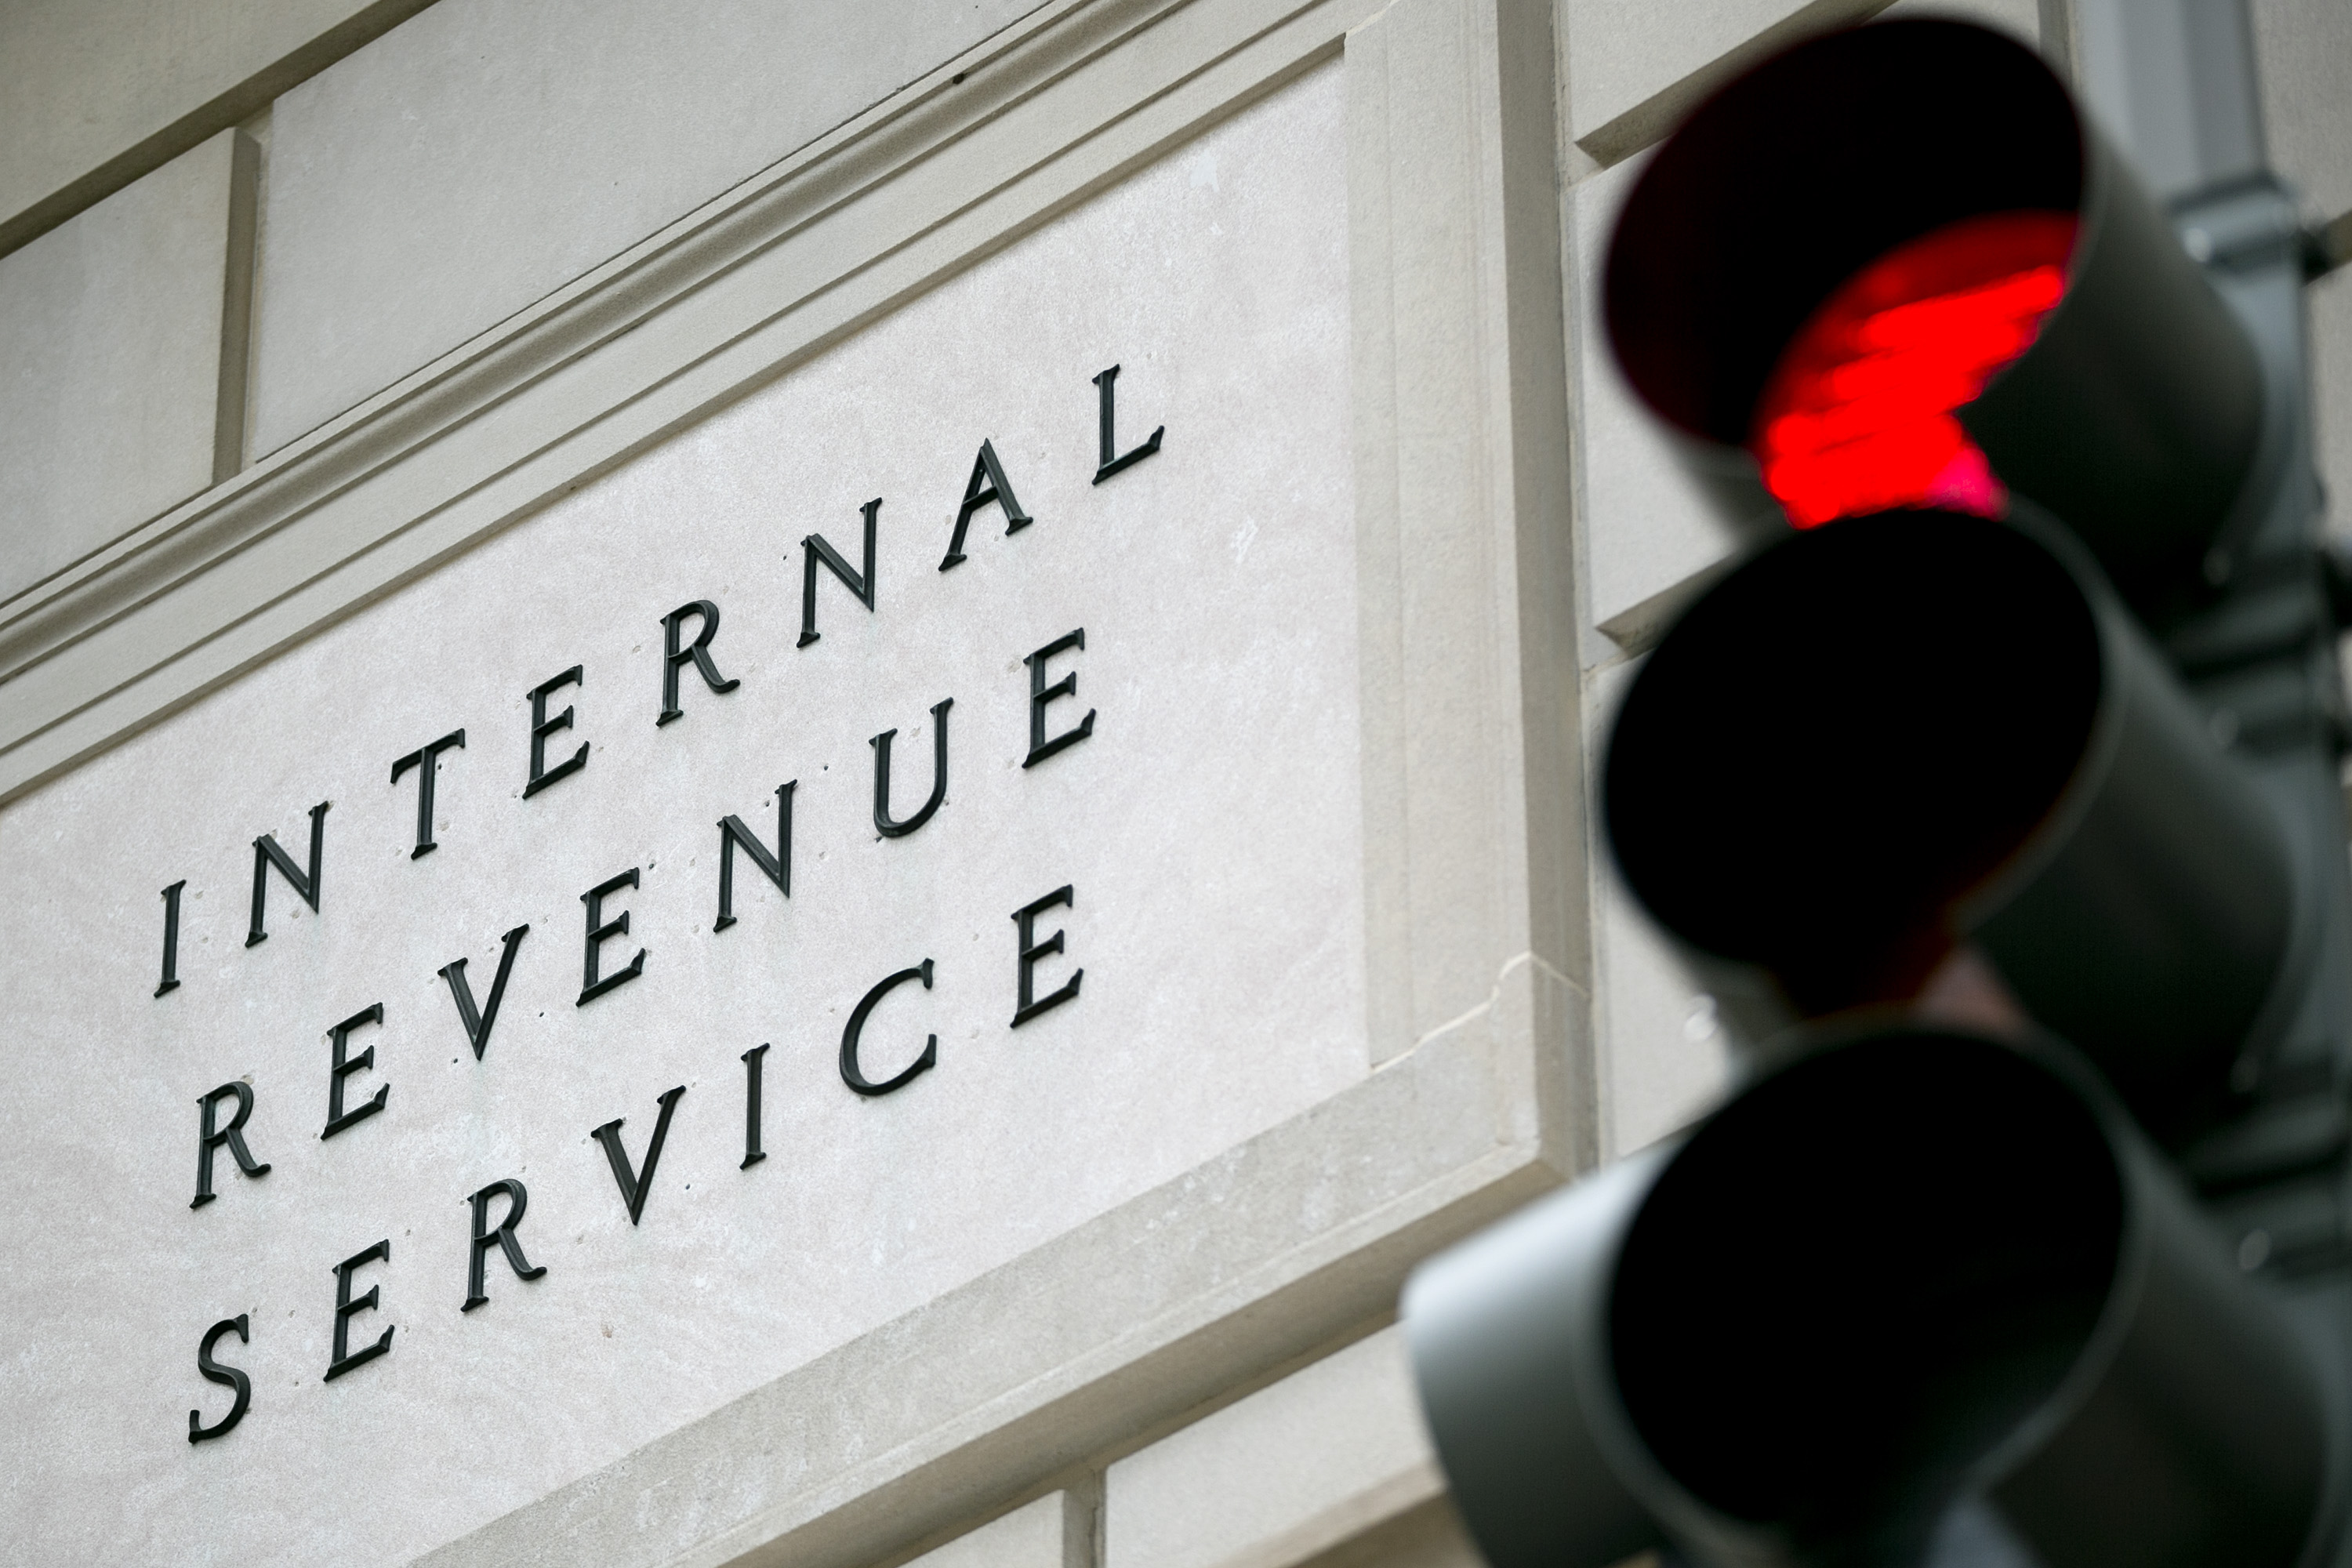 The Internal Revenue Service (IRS) building stands in Washington, D.C., U.S., May 15, 2013.